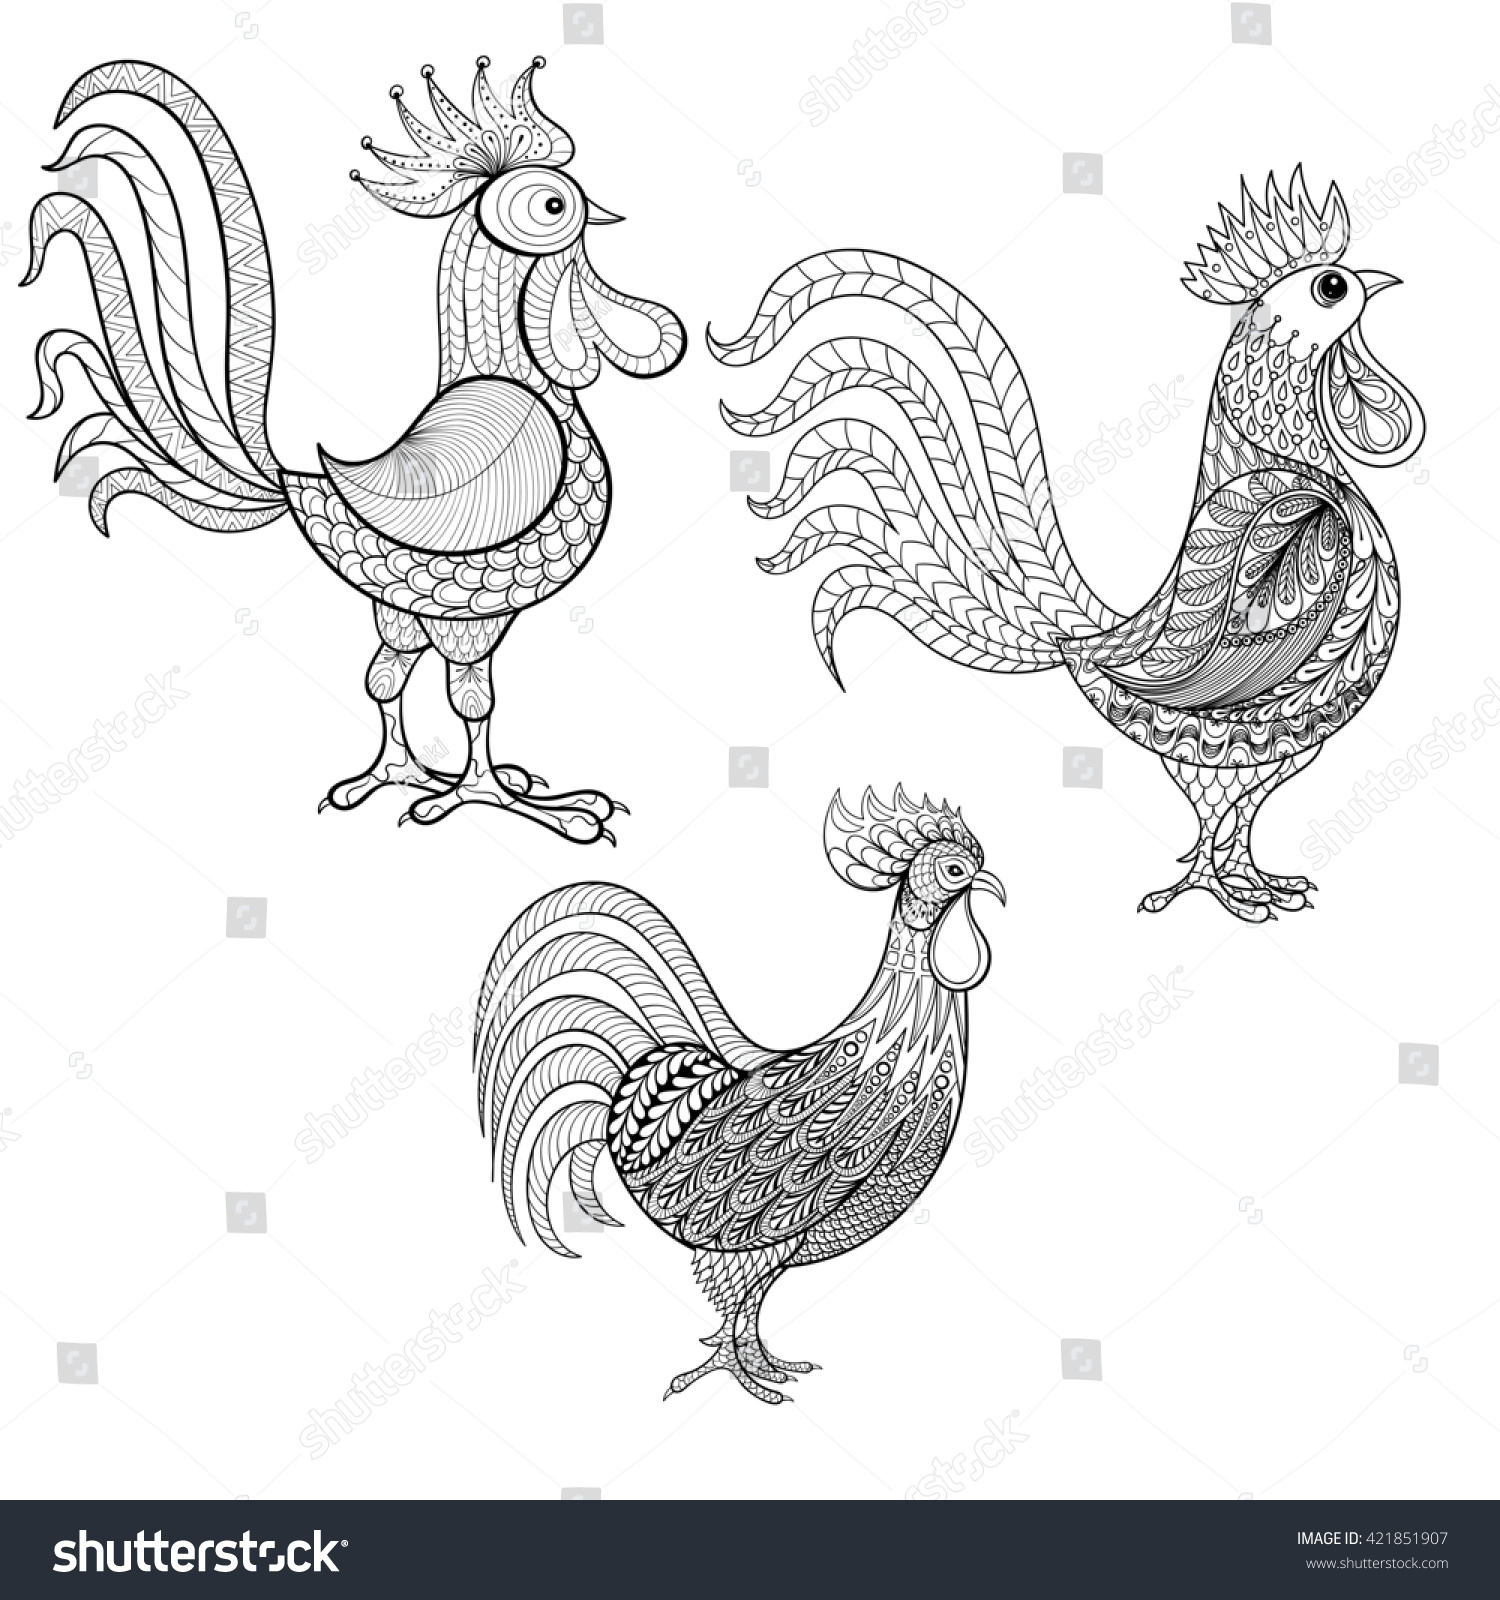 set cocks roosters new year 2017 stock illustration 421851907